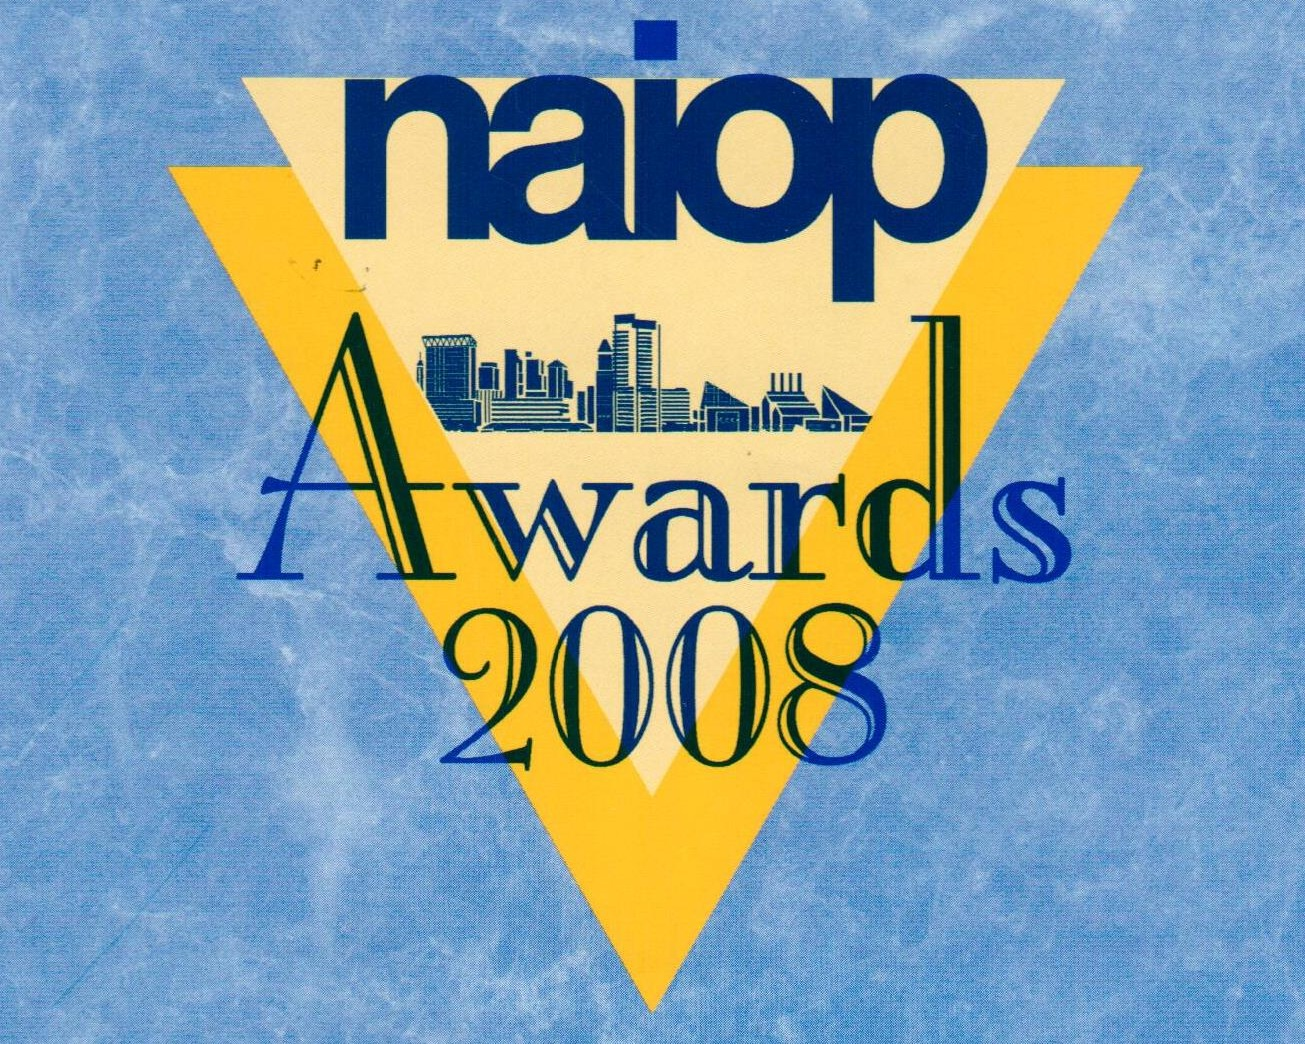 NAIOP+2008+award+symbol.jpg